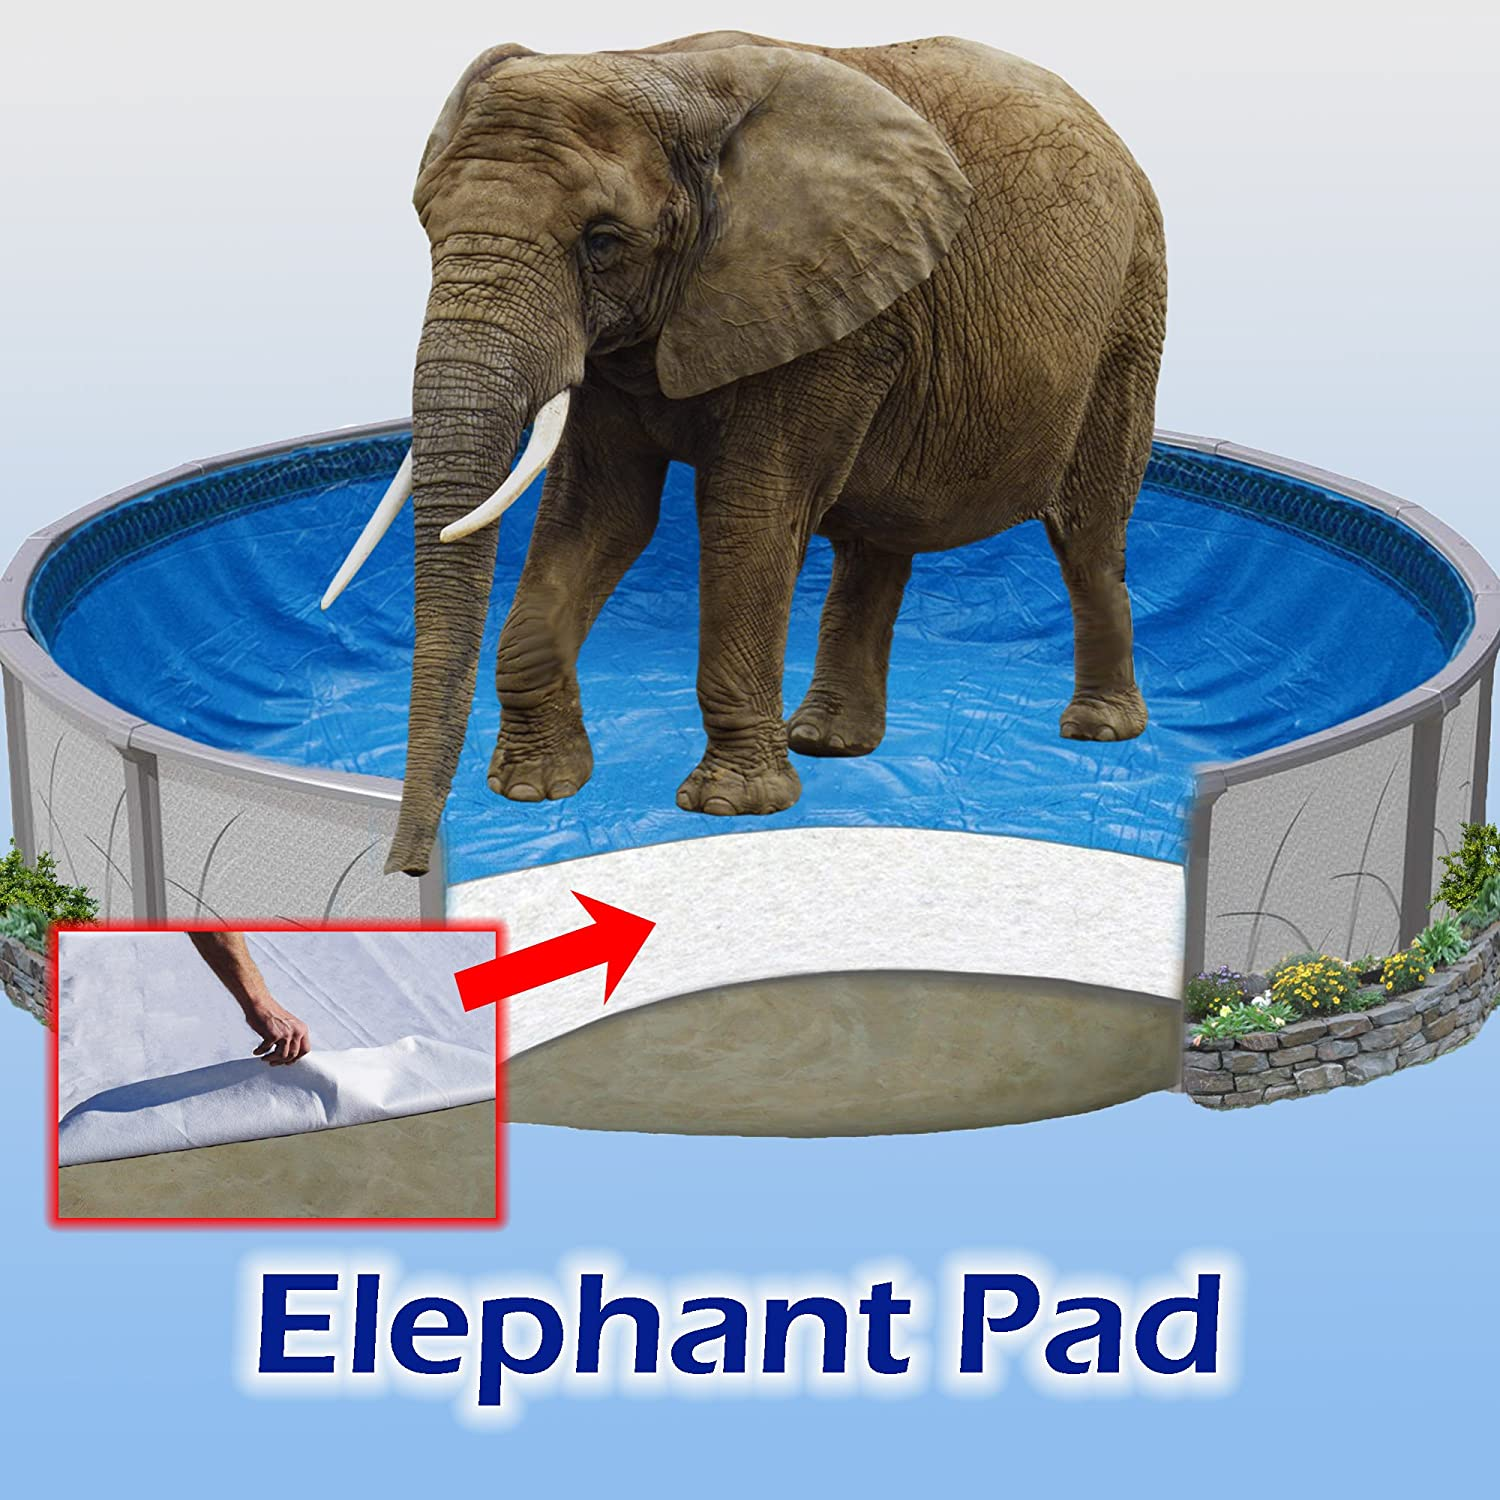 12x18 ft Oval Pool Liner Pad, Elephant Guard Armor Shield Padding Quality Pool Products